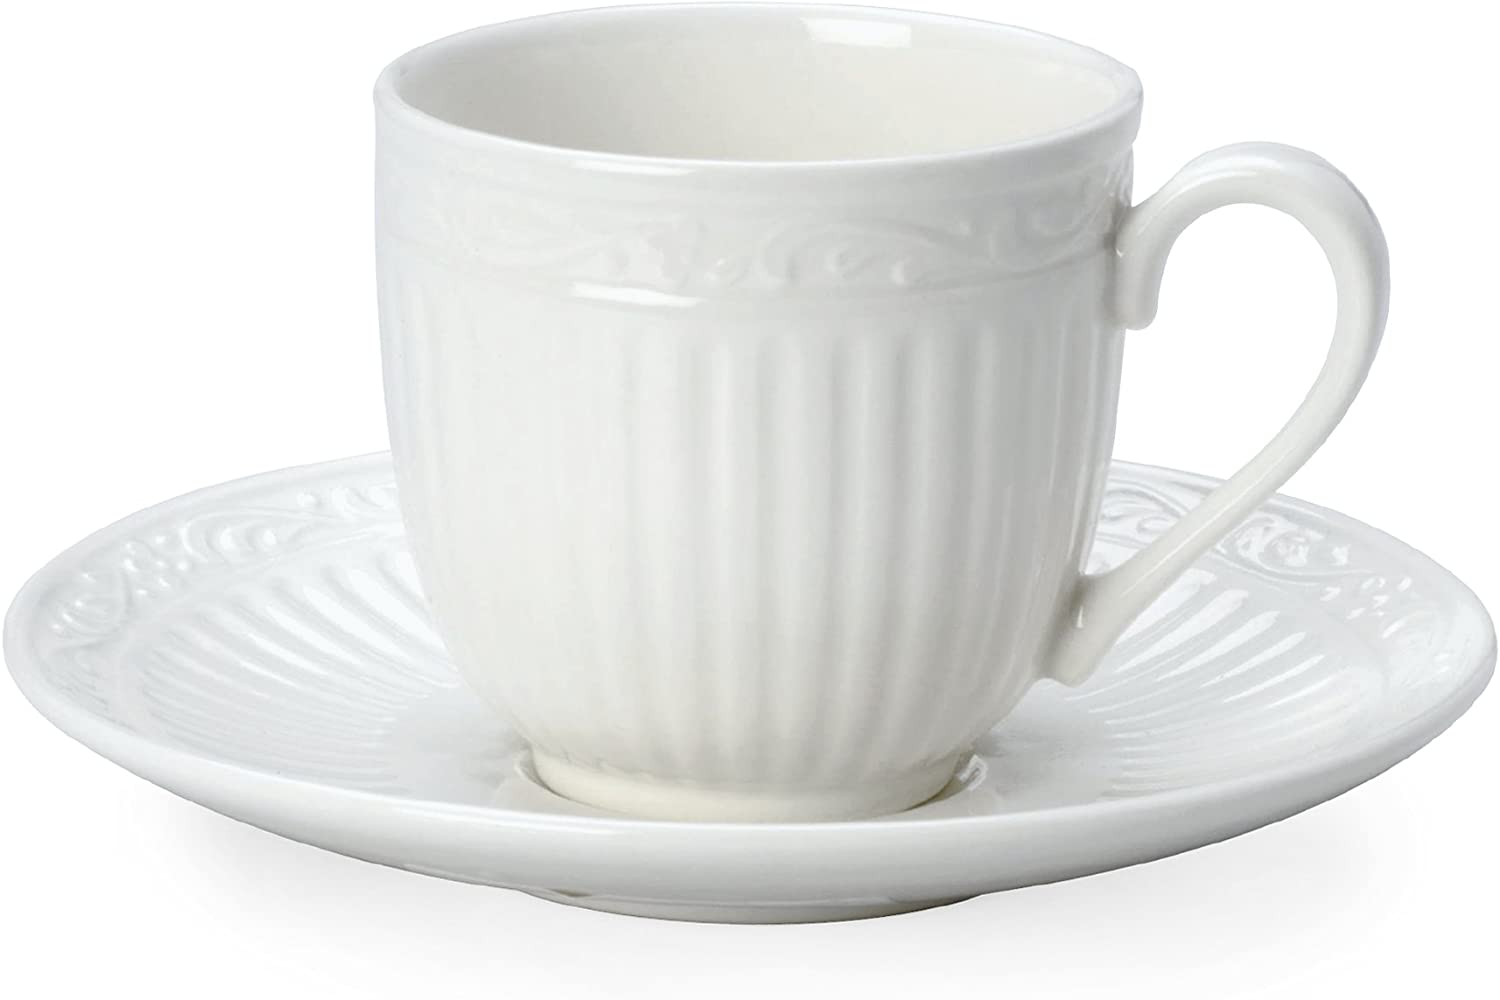 Mikasa Italian Countryside Espresso Cup and Saucer Set